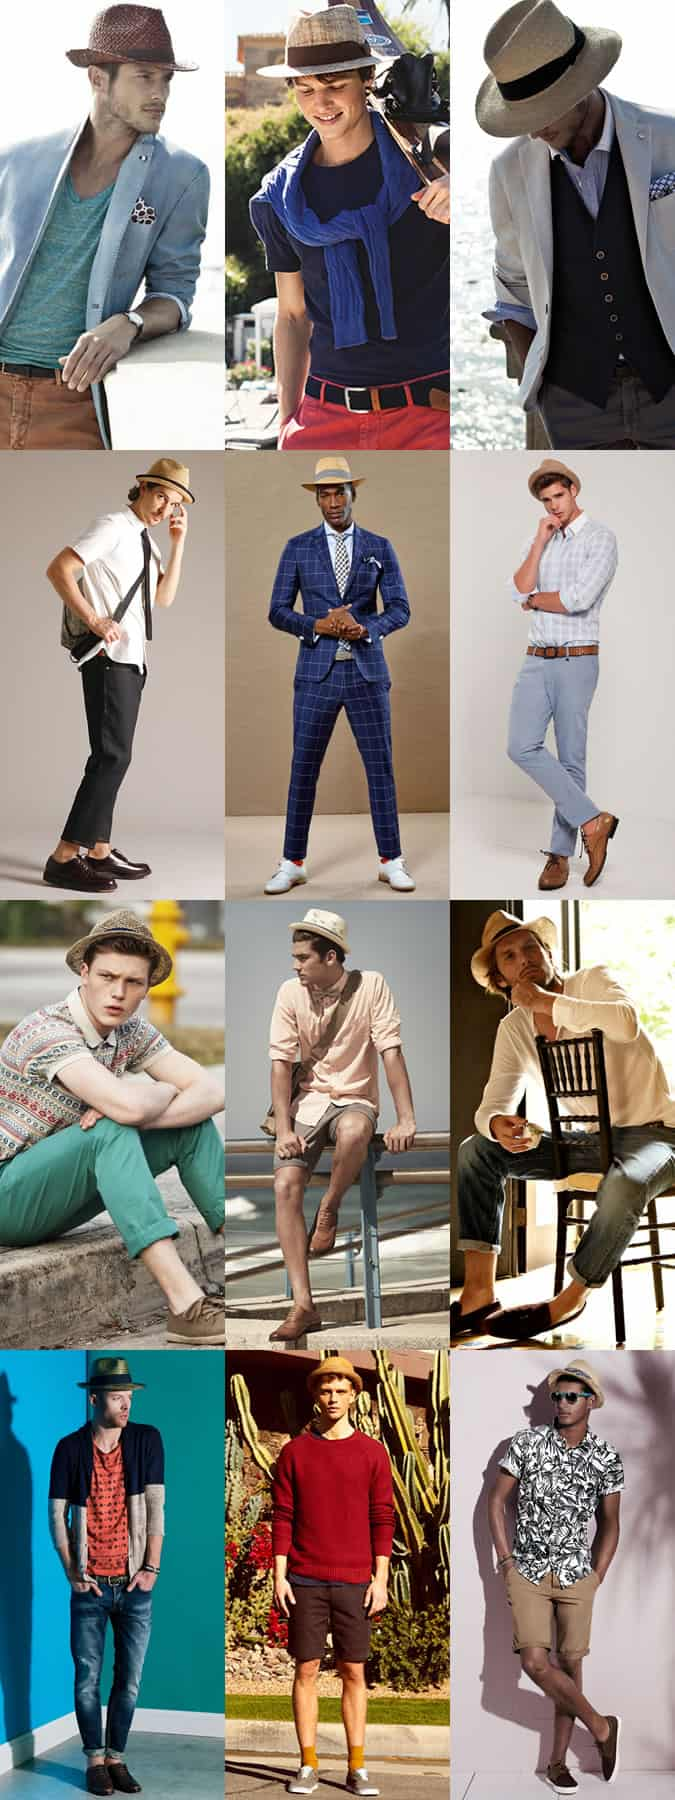 Men's Straw Fedora Summer Outfit Inspiration Lookbook